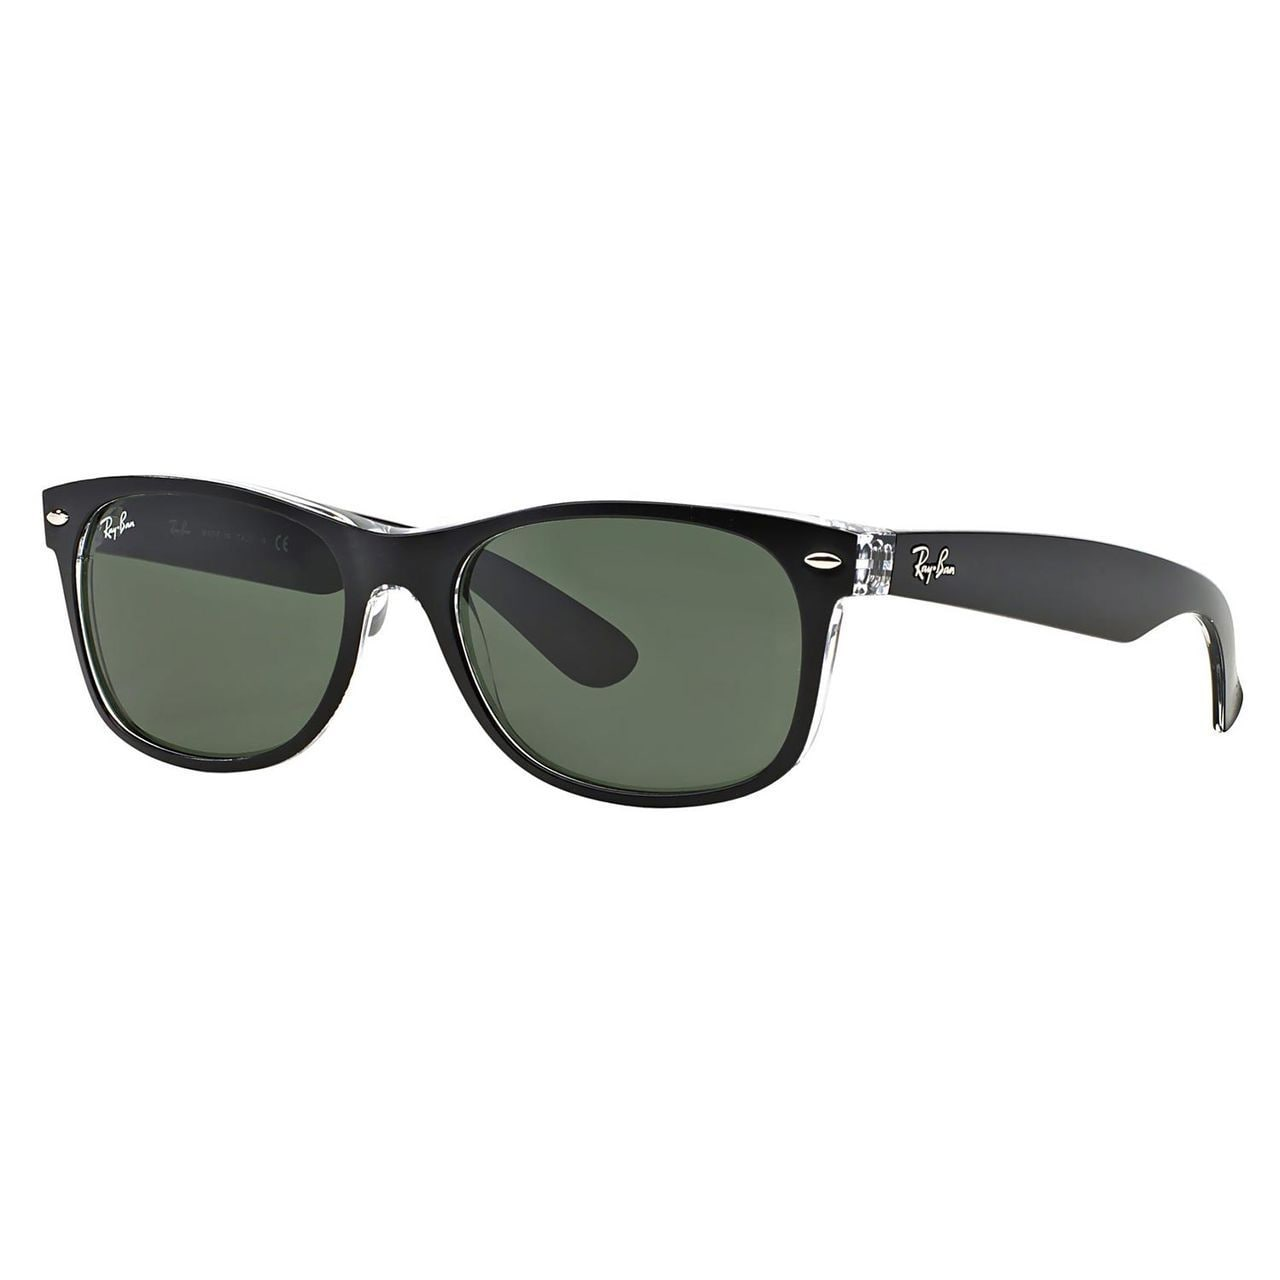 81ac45c9349b Shop Ray-Ban RB2132 New Wayfarer Color Mix Sunglasses Transparent Black   Green Classic 55mm - Black - Free Shipping Today - Overstock - 9922384